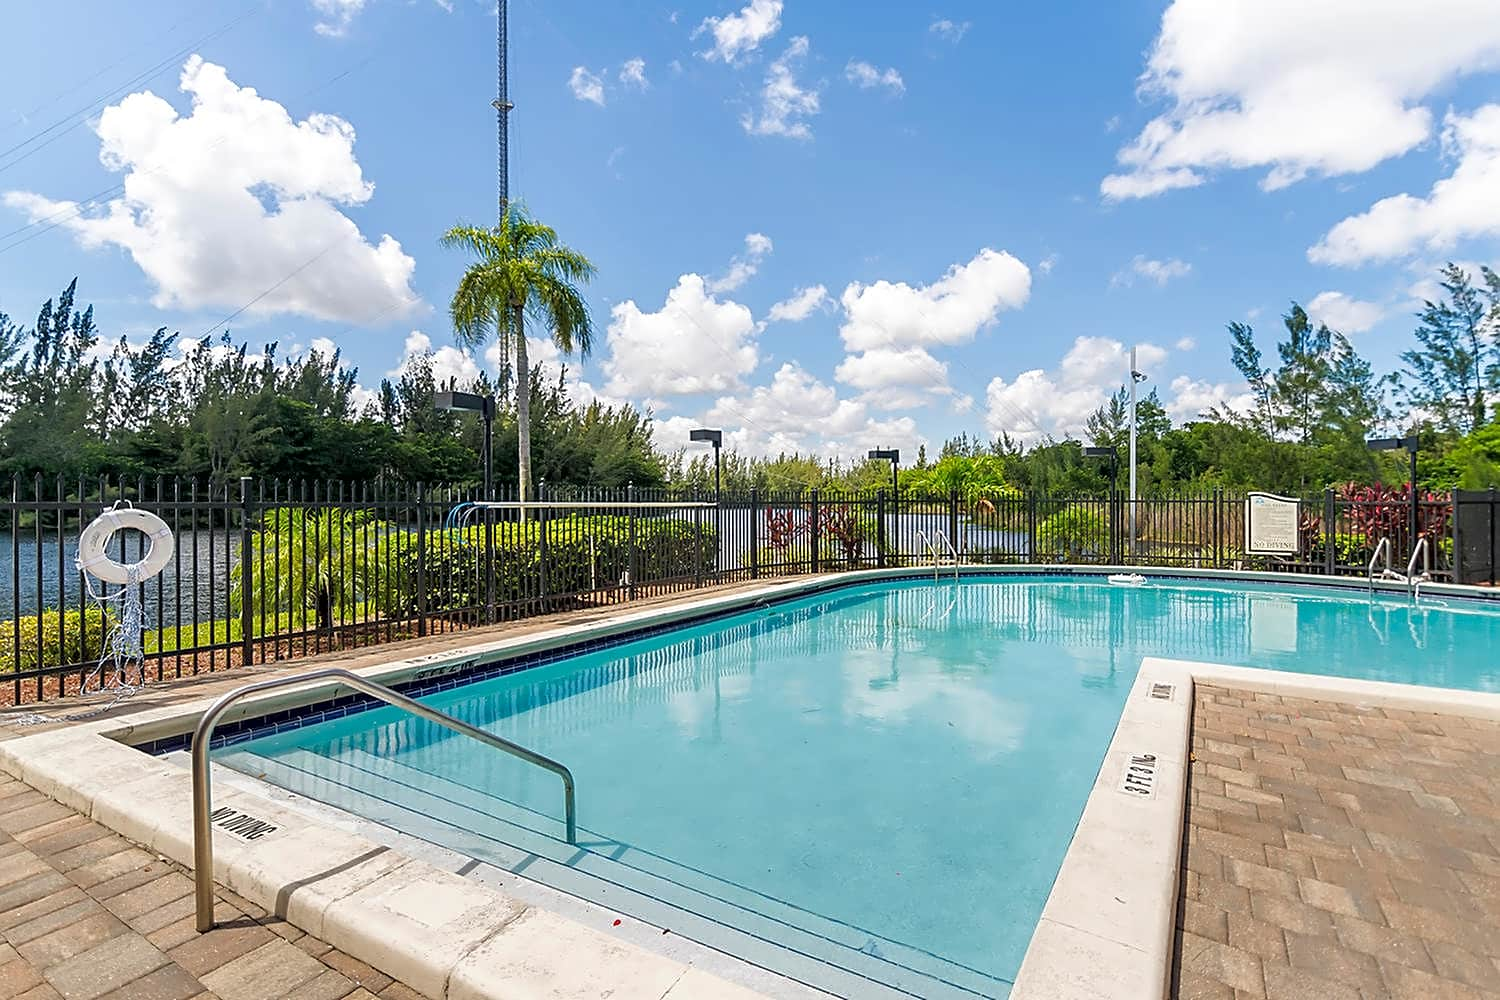 Apartments Near Barry Advenir At Walden Lake for Barry University Students in Miami Shores, FL